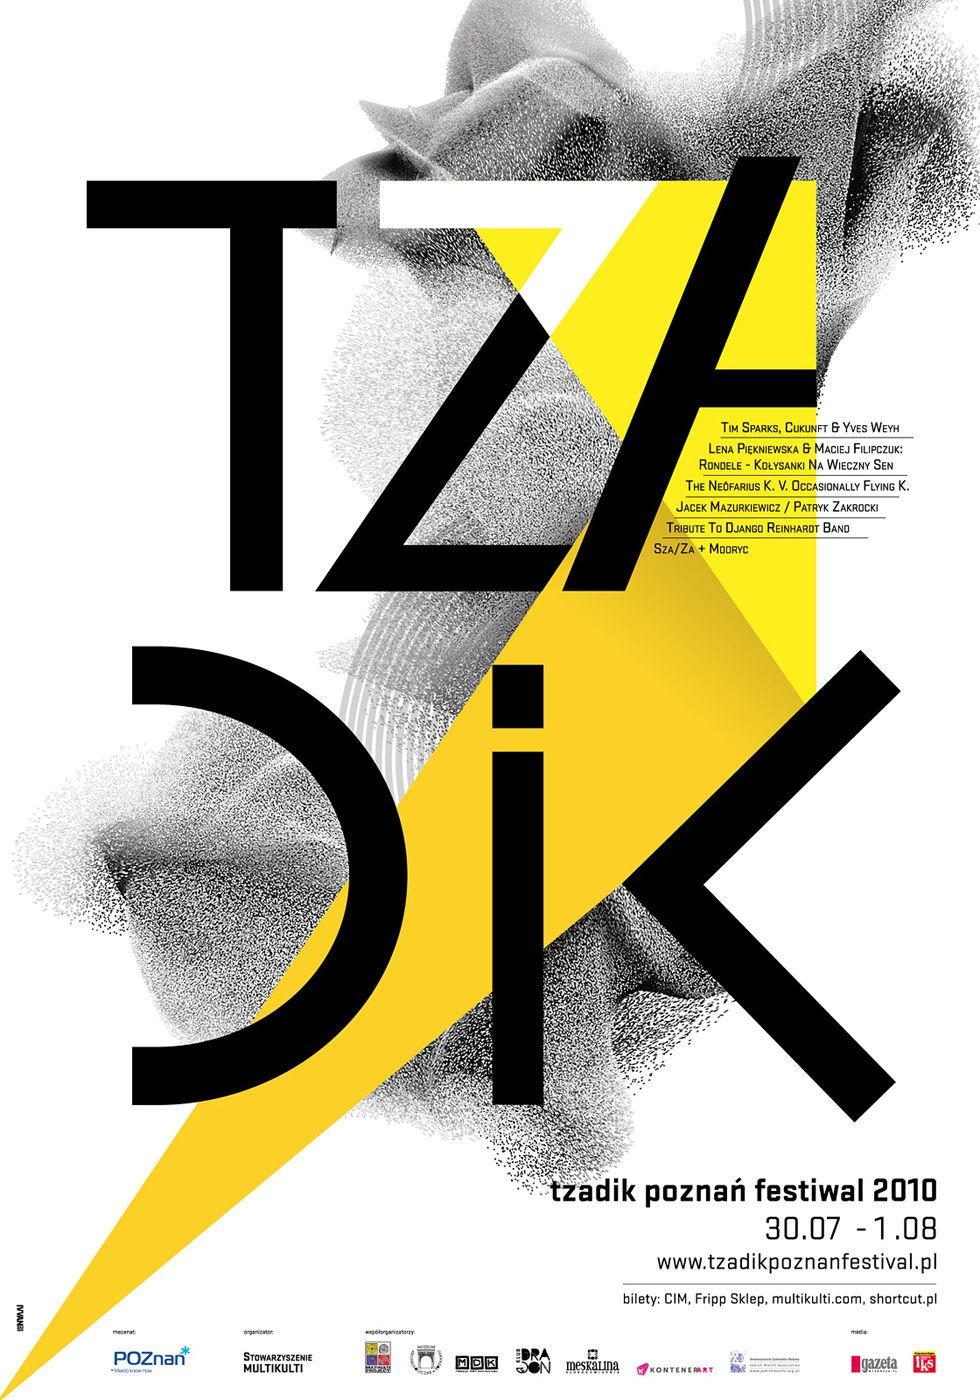 Krzysztof Iwański involved in poster art and screen printing. The artist's works are spontaneity and dynamism linked with striving for harmony and orderliness. He oscillates between stylistics deriving from Neo-Plasticism, Constructivism As for the form, the artist, similarly to other constructivists, distances himself from realistic presentation in favour of more abstract, geometric, minimized forms which carry the spirit of modernity in a better way. qki@ivvanski.com www.ivvanski.com